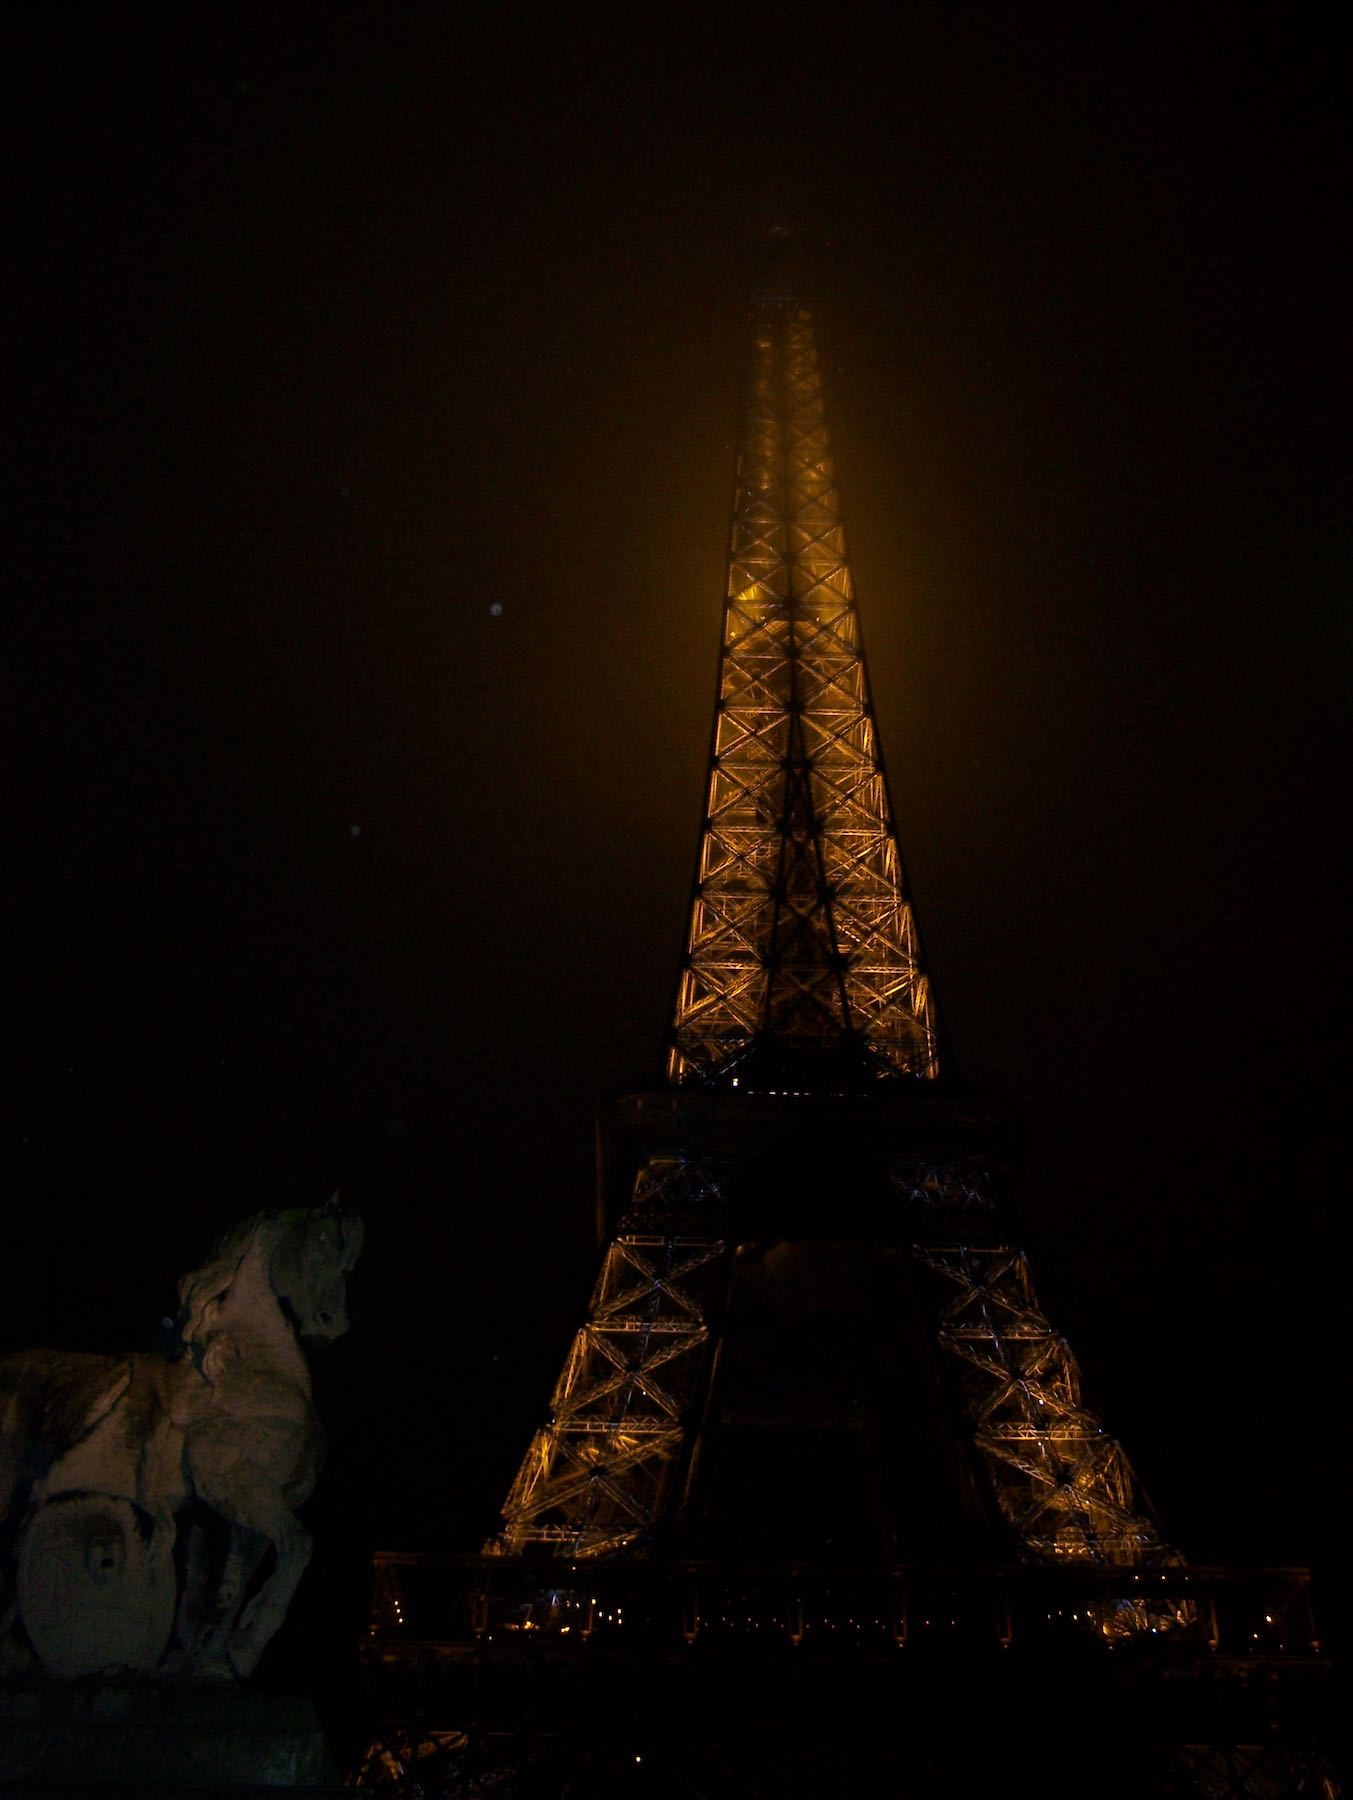 Eiffel tower in Paris at night surrounded by clouds